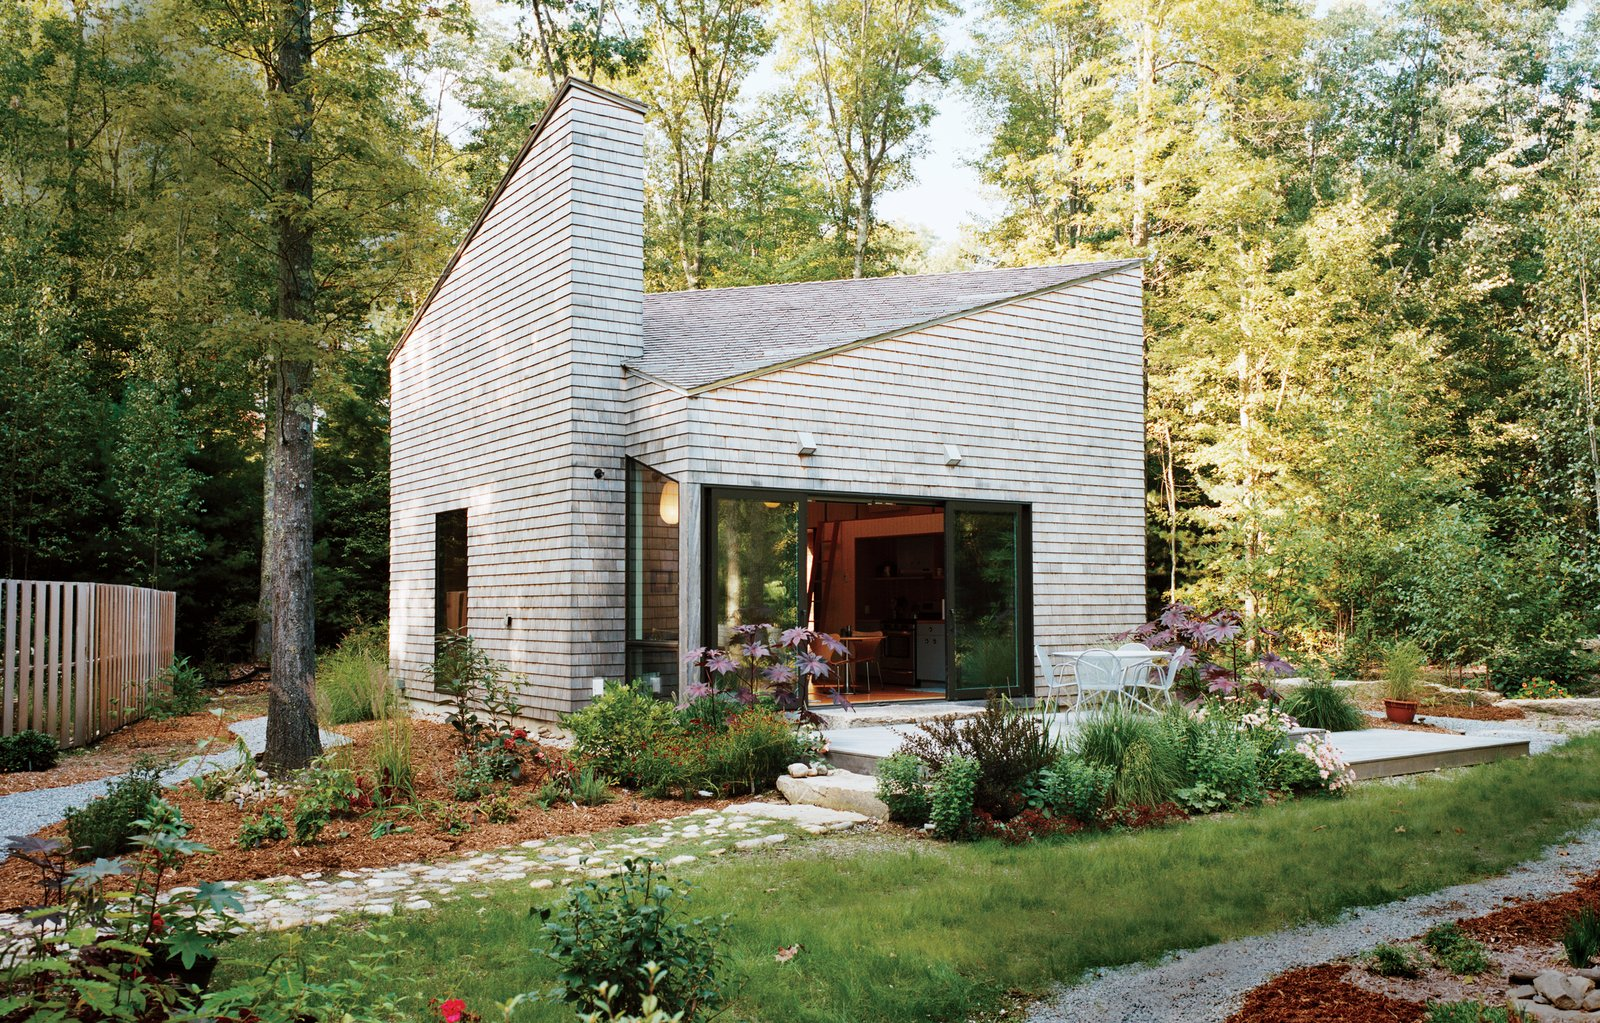 Exterior, Tiny Home Building Type, Wood Siding Material, and Shingles Roof Material An artist by trade, and gardener by passion, Allison Paschke commissioned Providence-based architecture firm 3SIXØ to build a modest cottage that would allow her to reconnect with nature. She landscaped the home's lush gardens herself.  Best Photos from This Tiny New England Cottage Is a No-Frills Weekend Hideaway